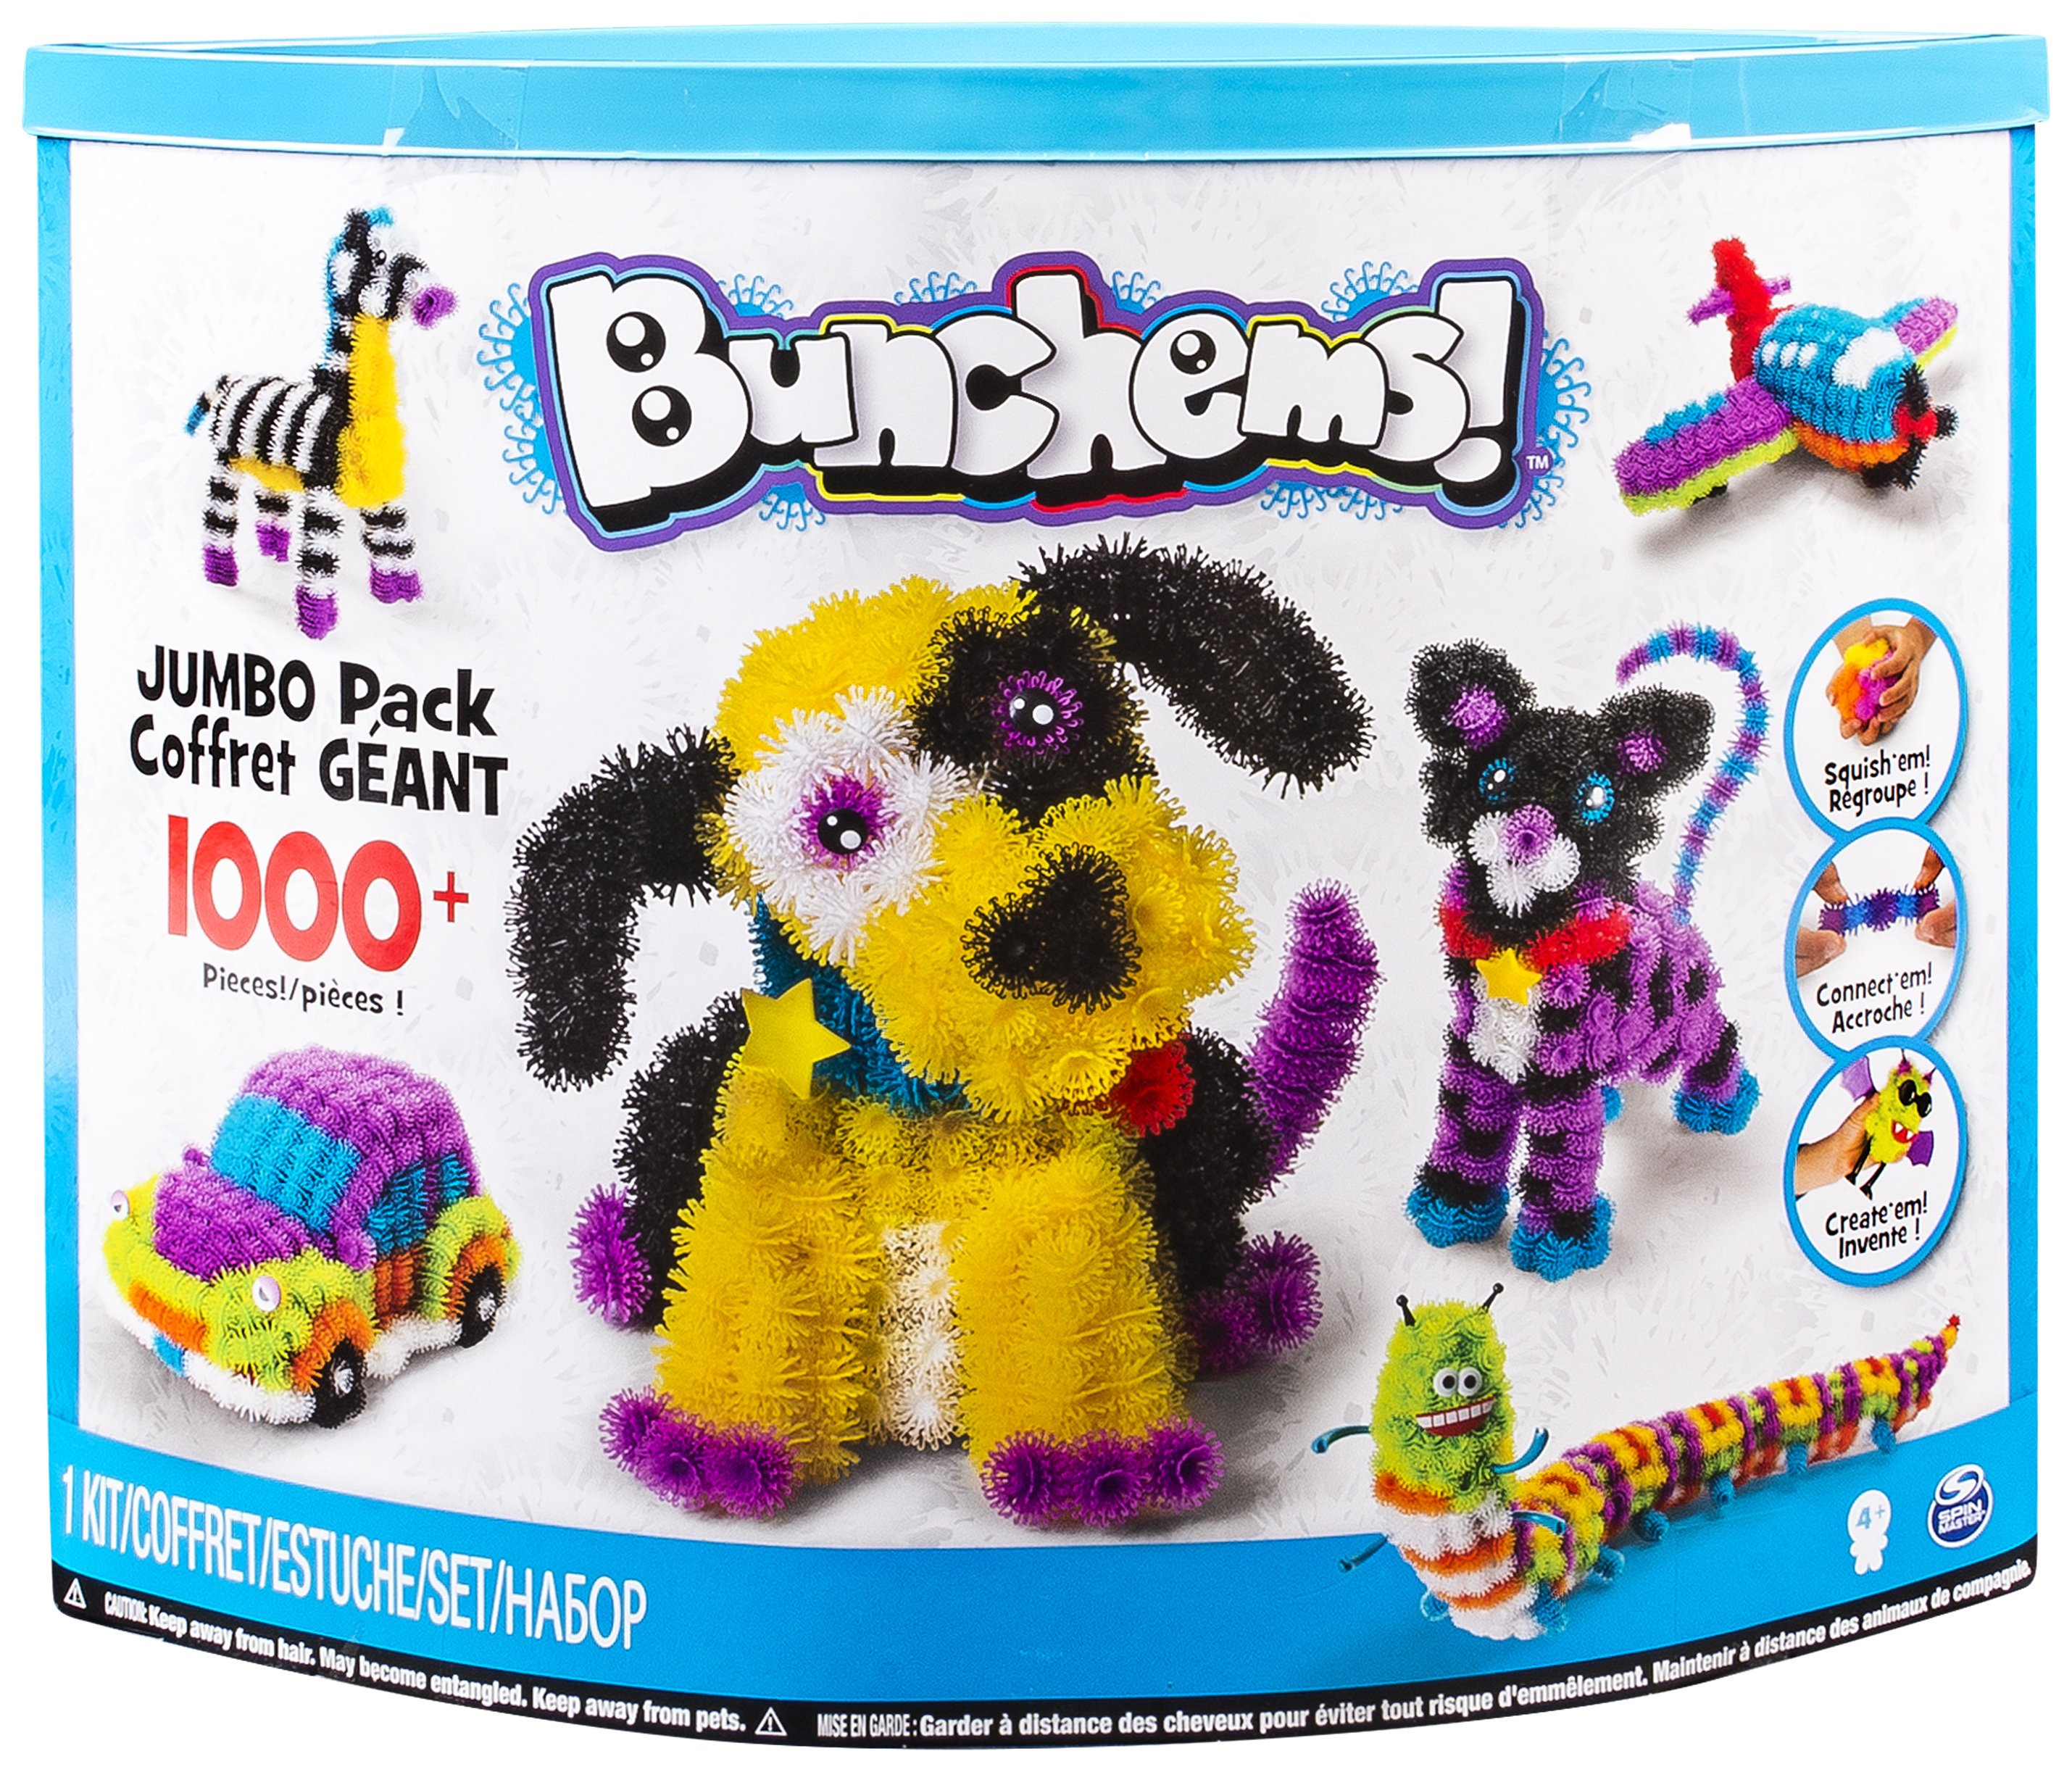 Image of Bunchems Jumbo Pack